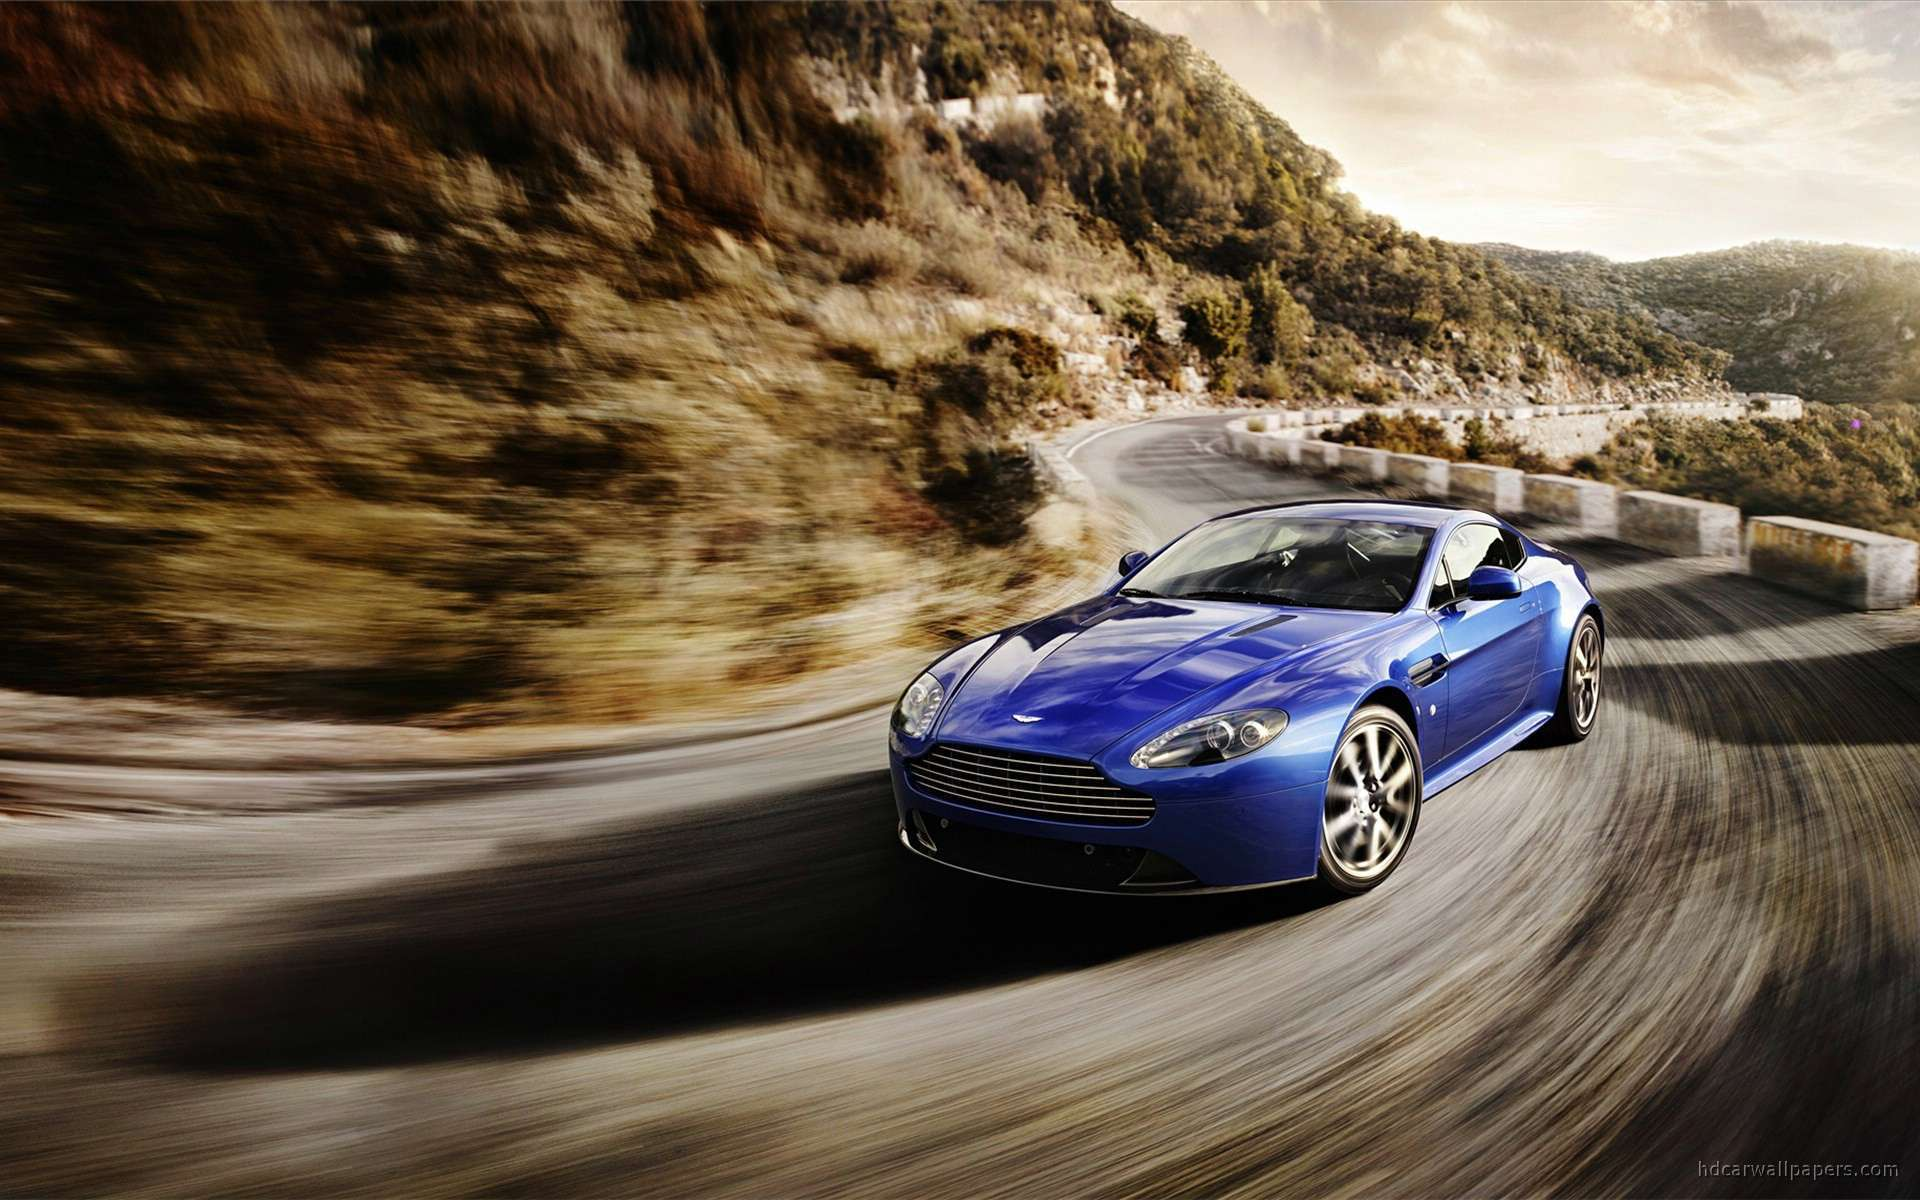 View Of 2011 Aston Martin V8 Vantage S Wallpapers Hd Car Wallpapers